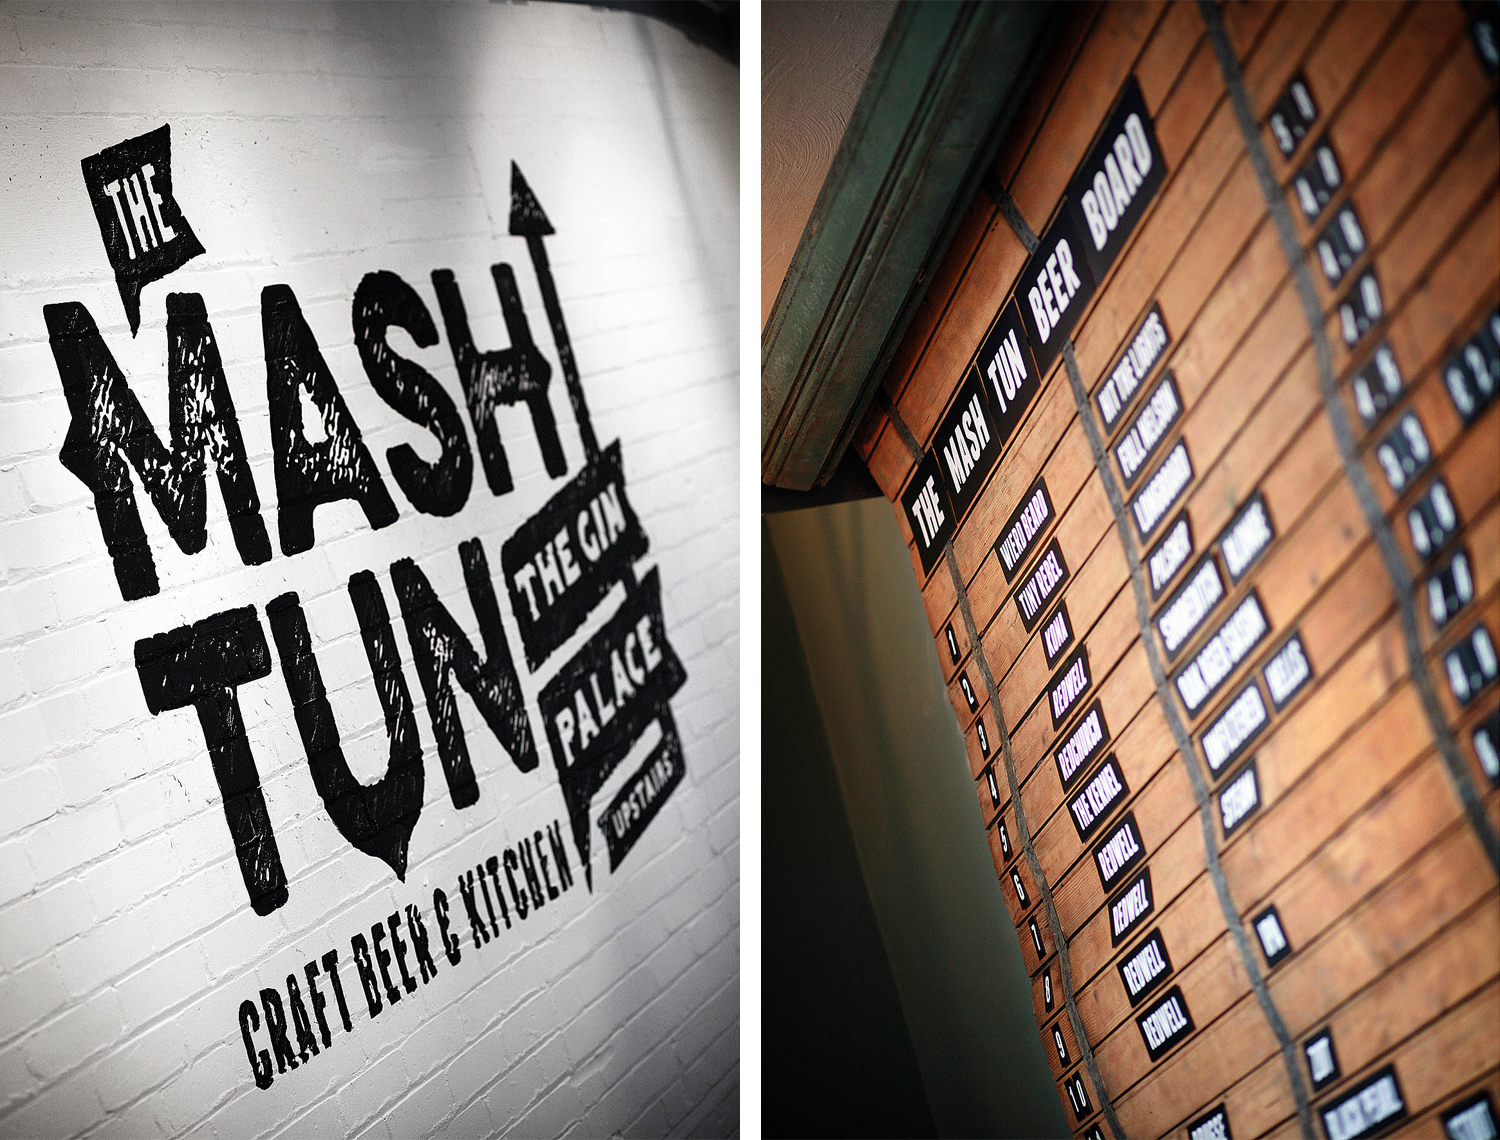 mash-tun-logo-design-branding-beer-board-sign-typography-norwich-craft-beer-pub-gin-palace.jpg